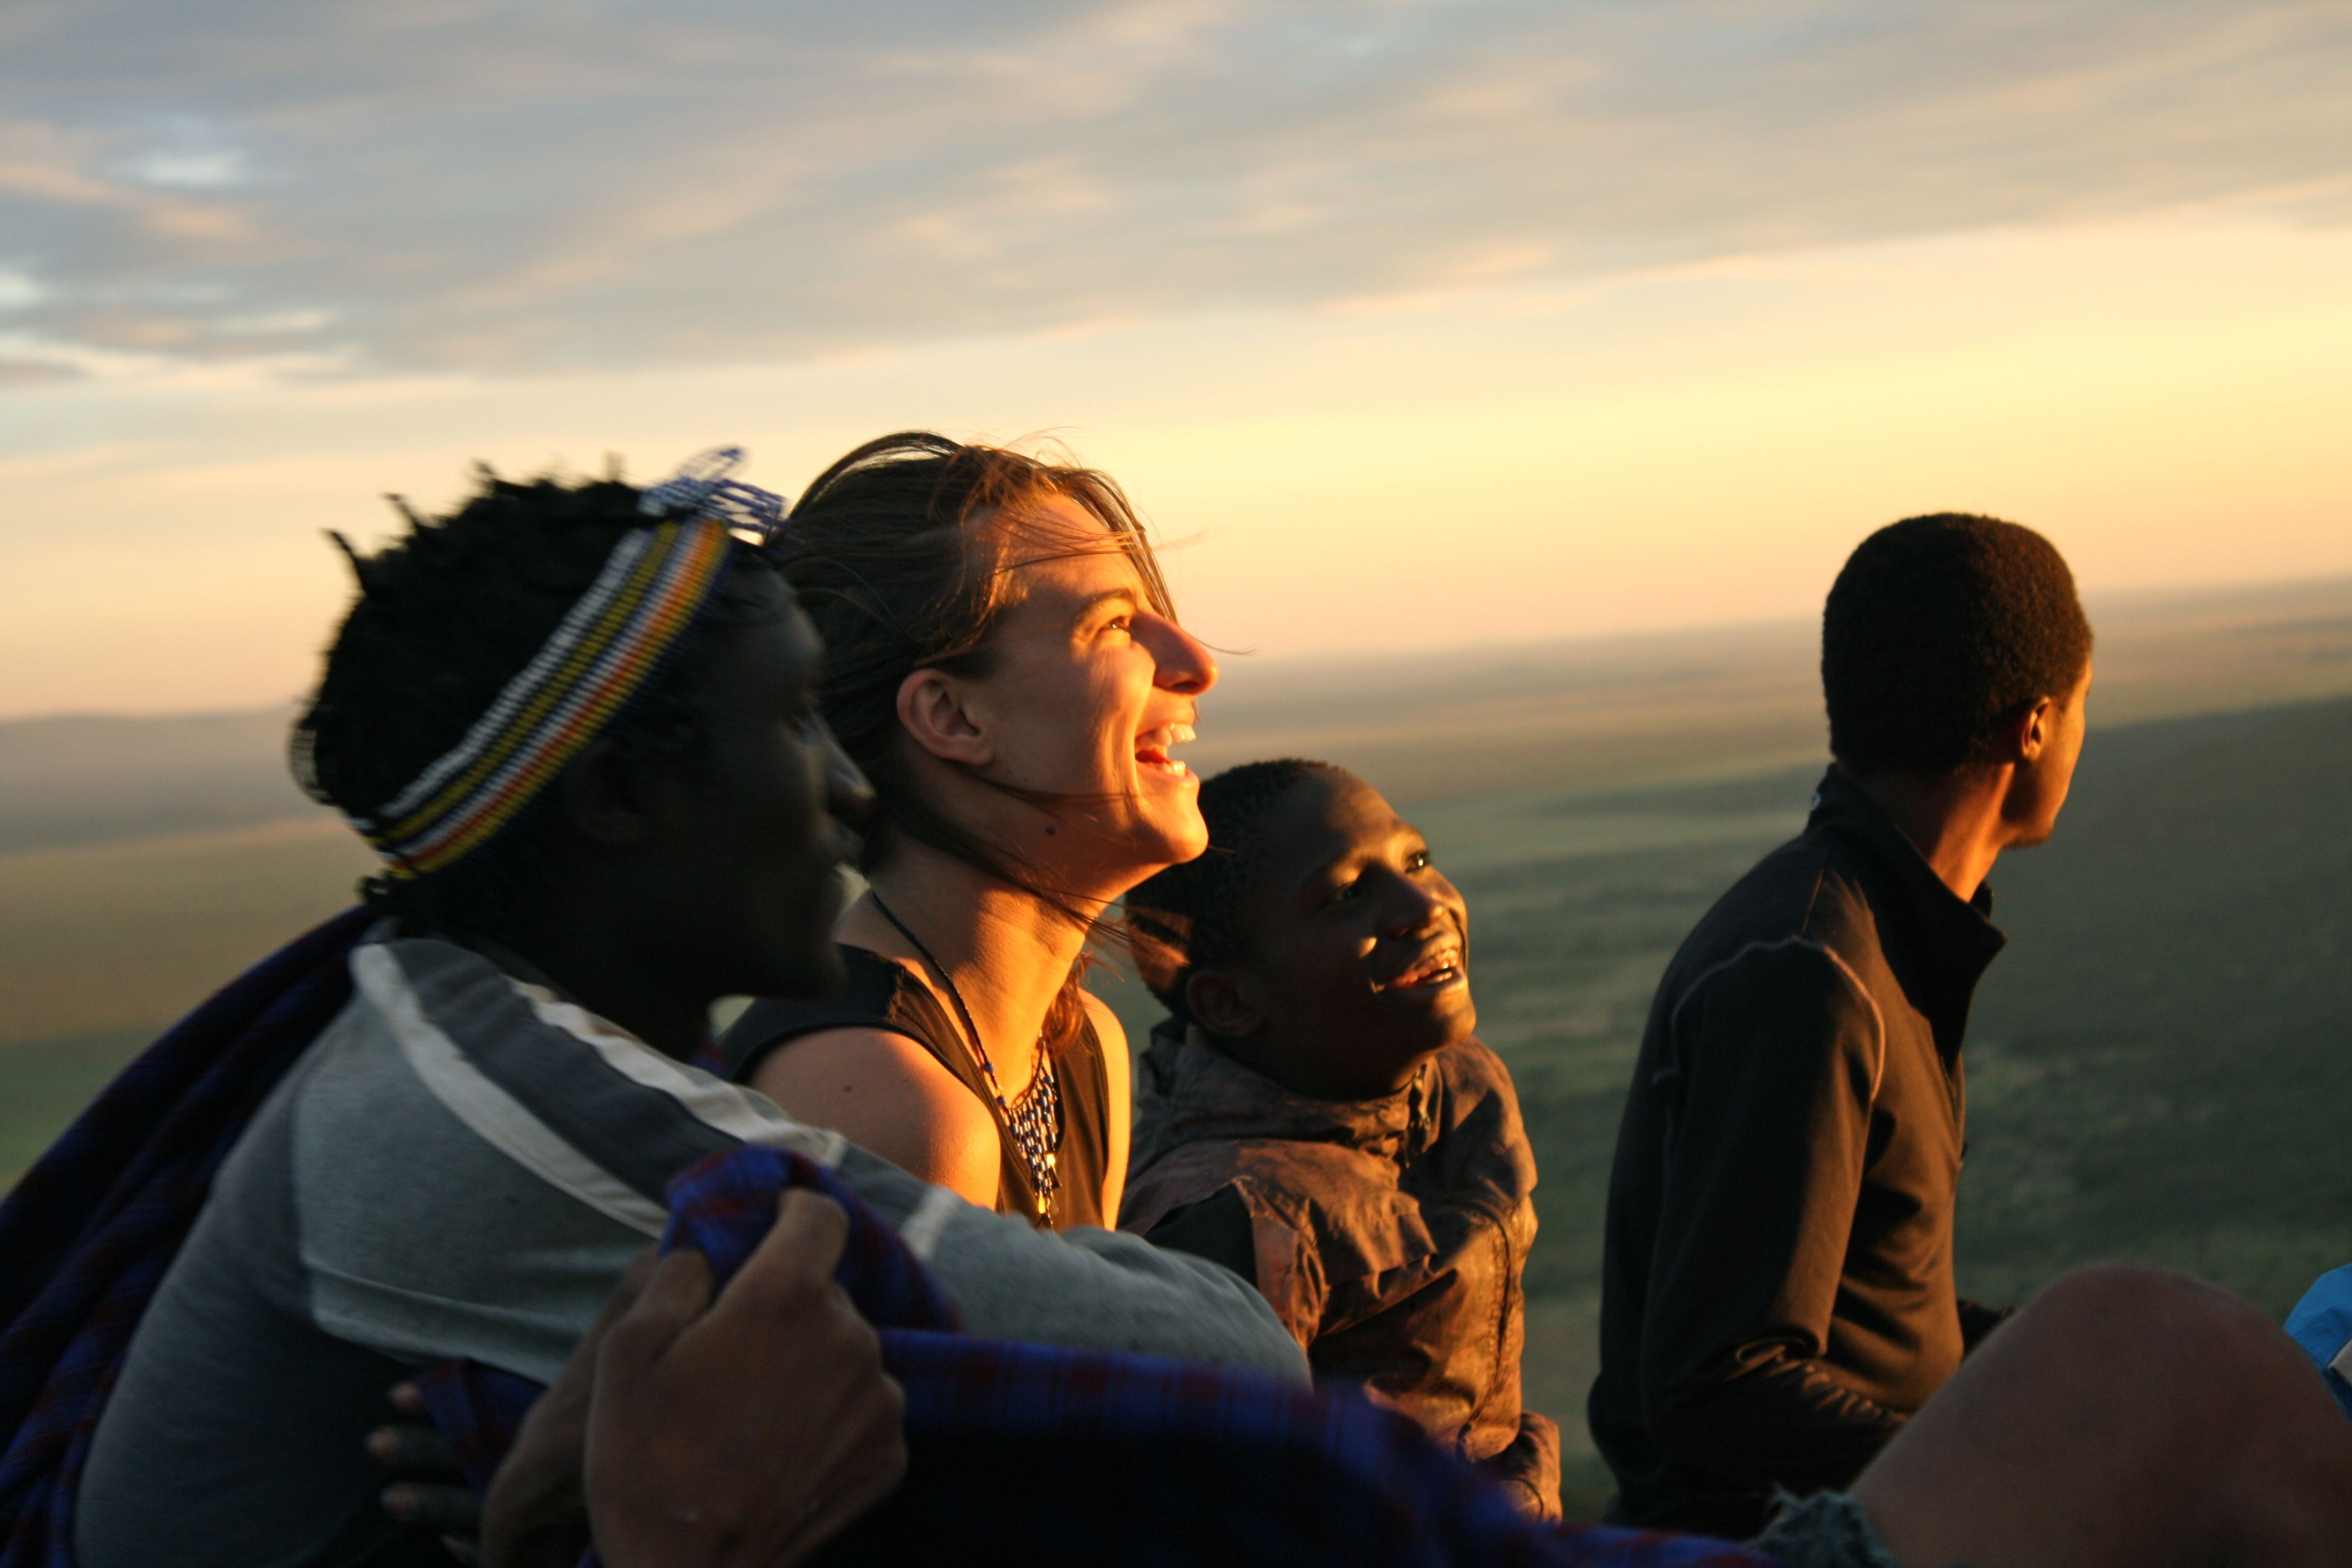 Students and locals watching sunset in Tanzania